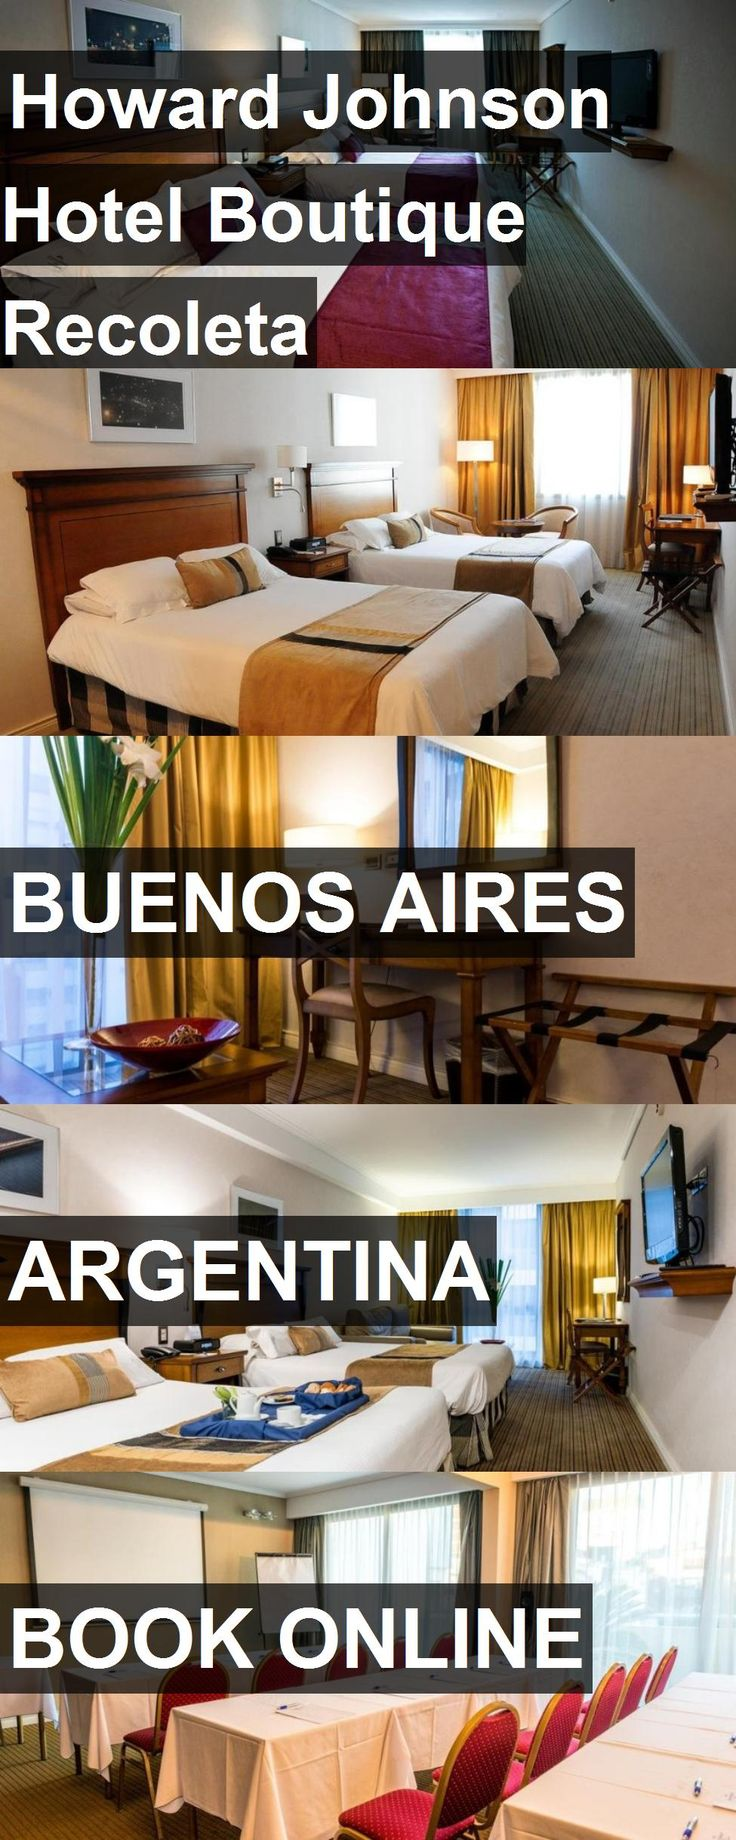 Howard Johnson Hotel Boutique Recoleta in Buenos Aires, Argentina. For more information, photos, reviews and best prices please follow the link. #Argentina #BuenosAires #travel #vacation #hotel